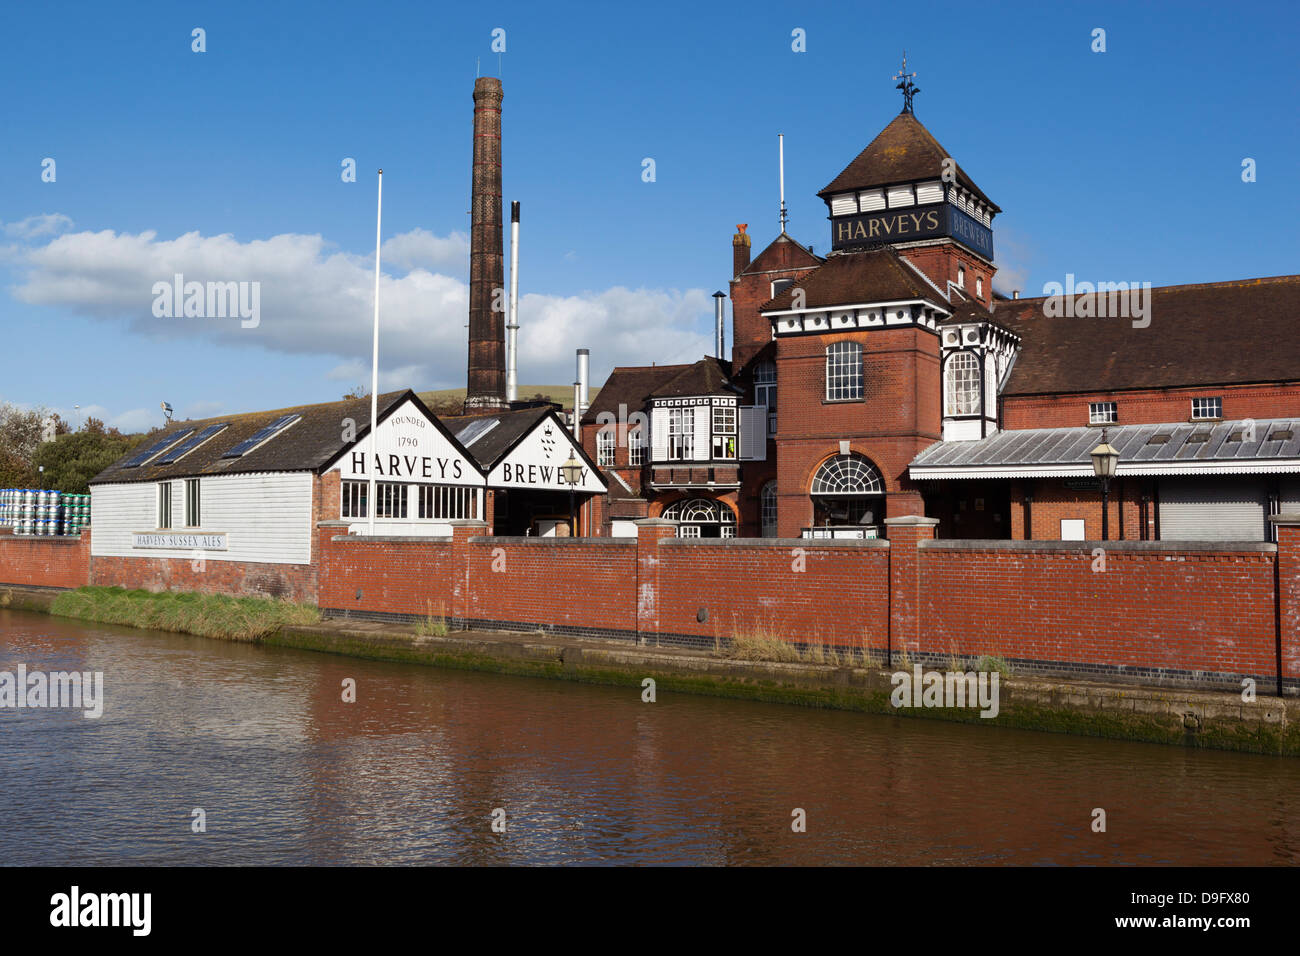 Harveys Brewery on River Ouse, Lewes, East Sussex, England, UK - Stock Image